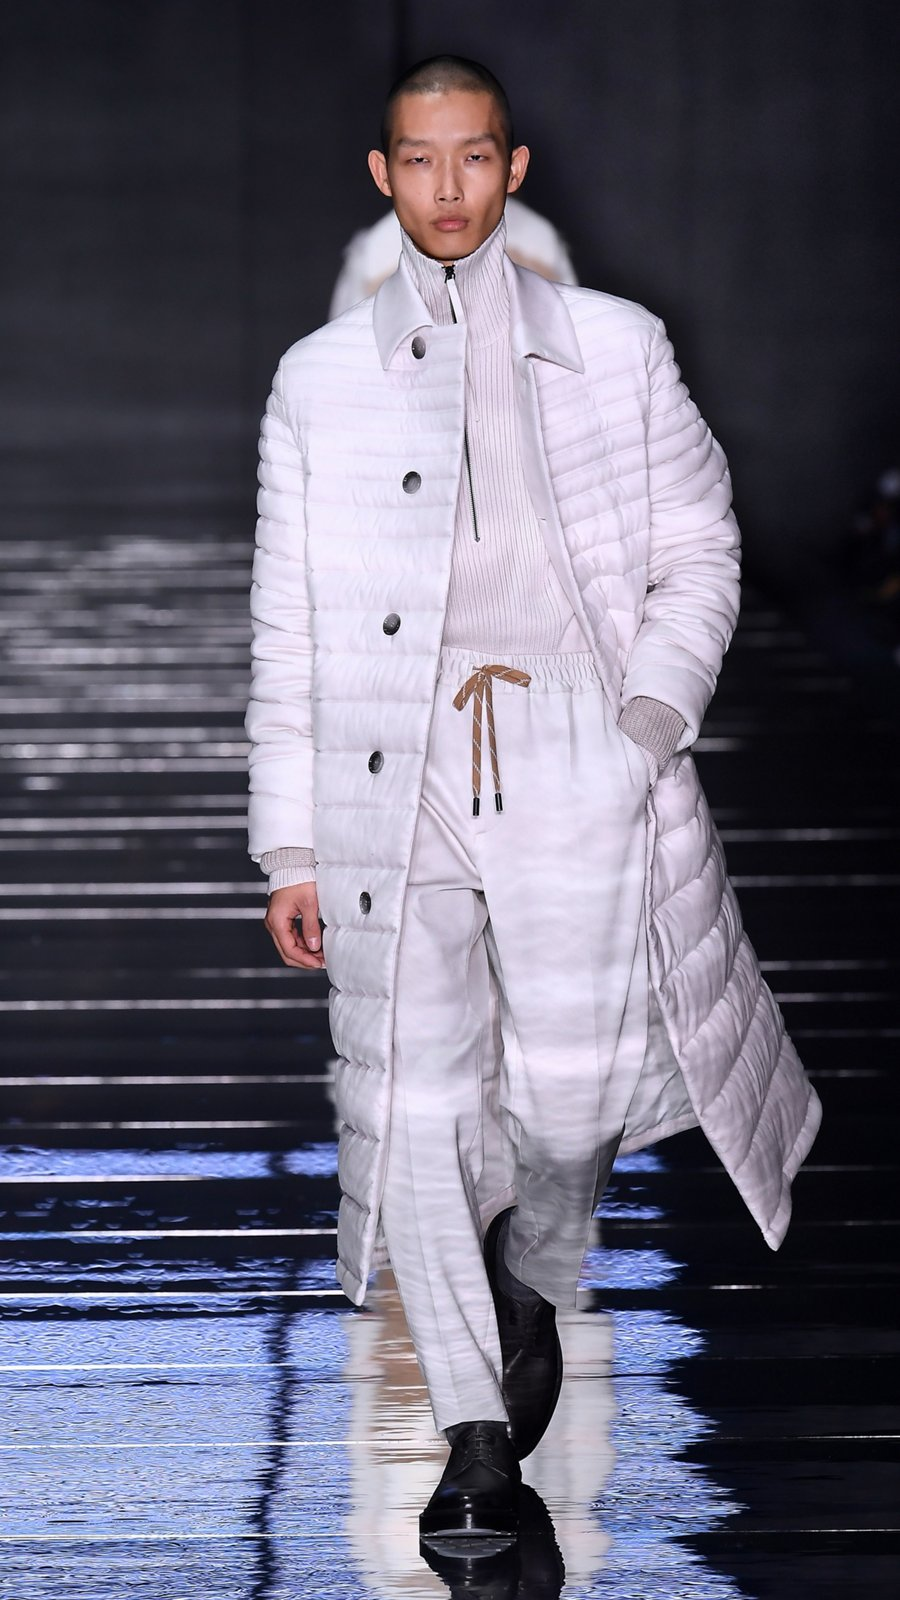 05e7390bf Runway look from the BOSS fashion show Fall/Winter 2019 ...